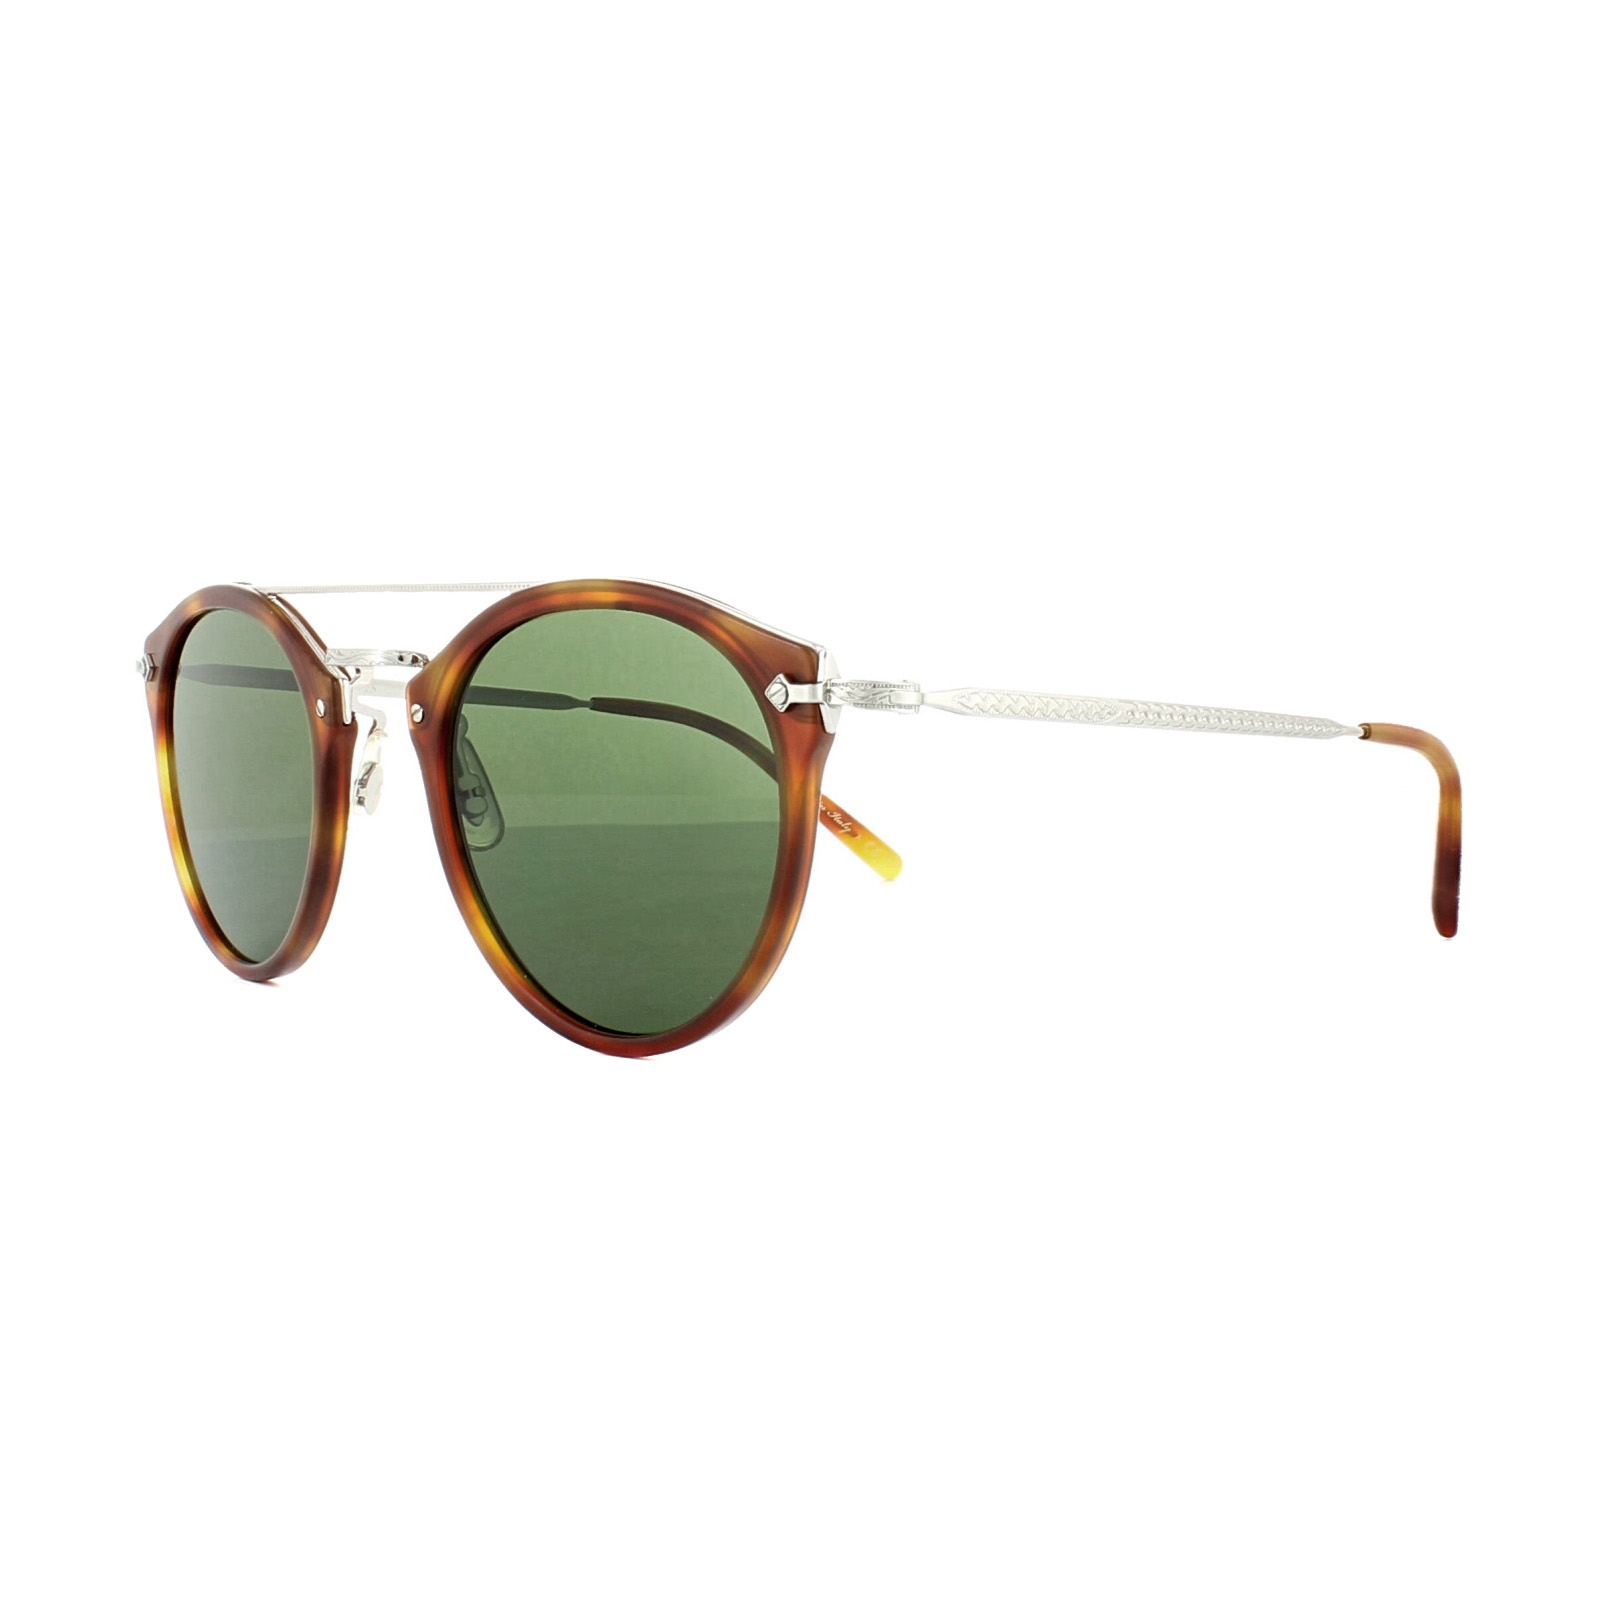 ab98b0df78 Sentinel Oliver Peoples Sunglasses Remick 5349 1483 71 Light Brown Havana  Green